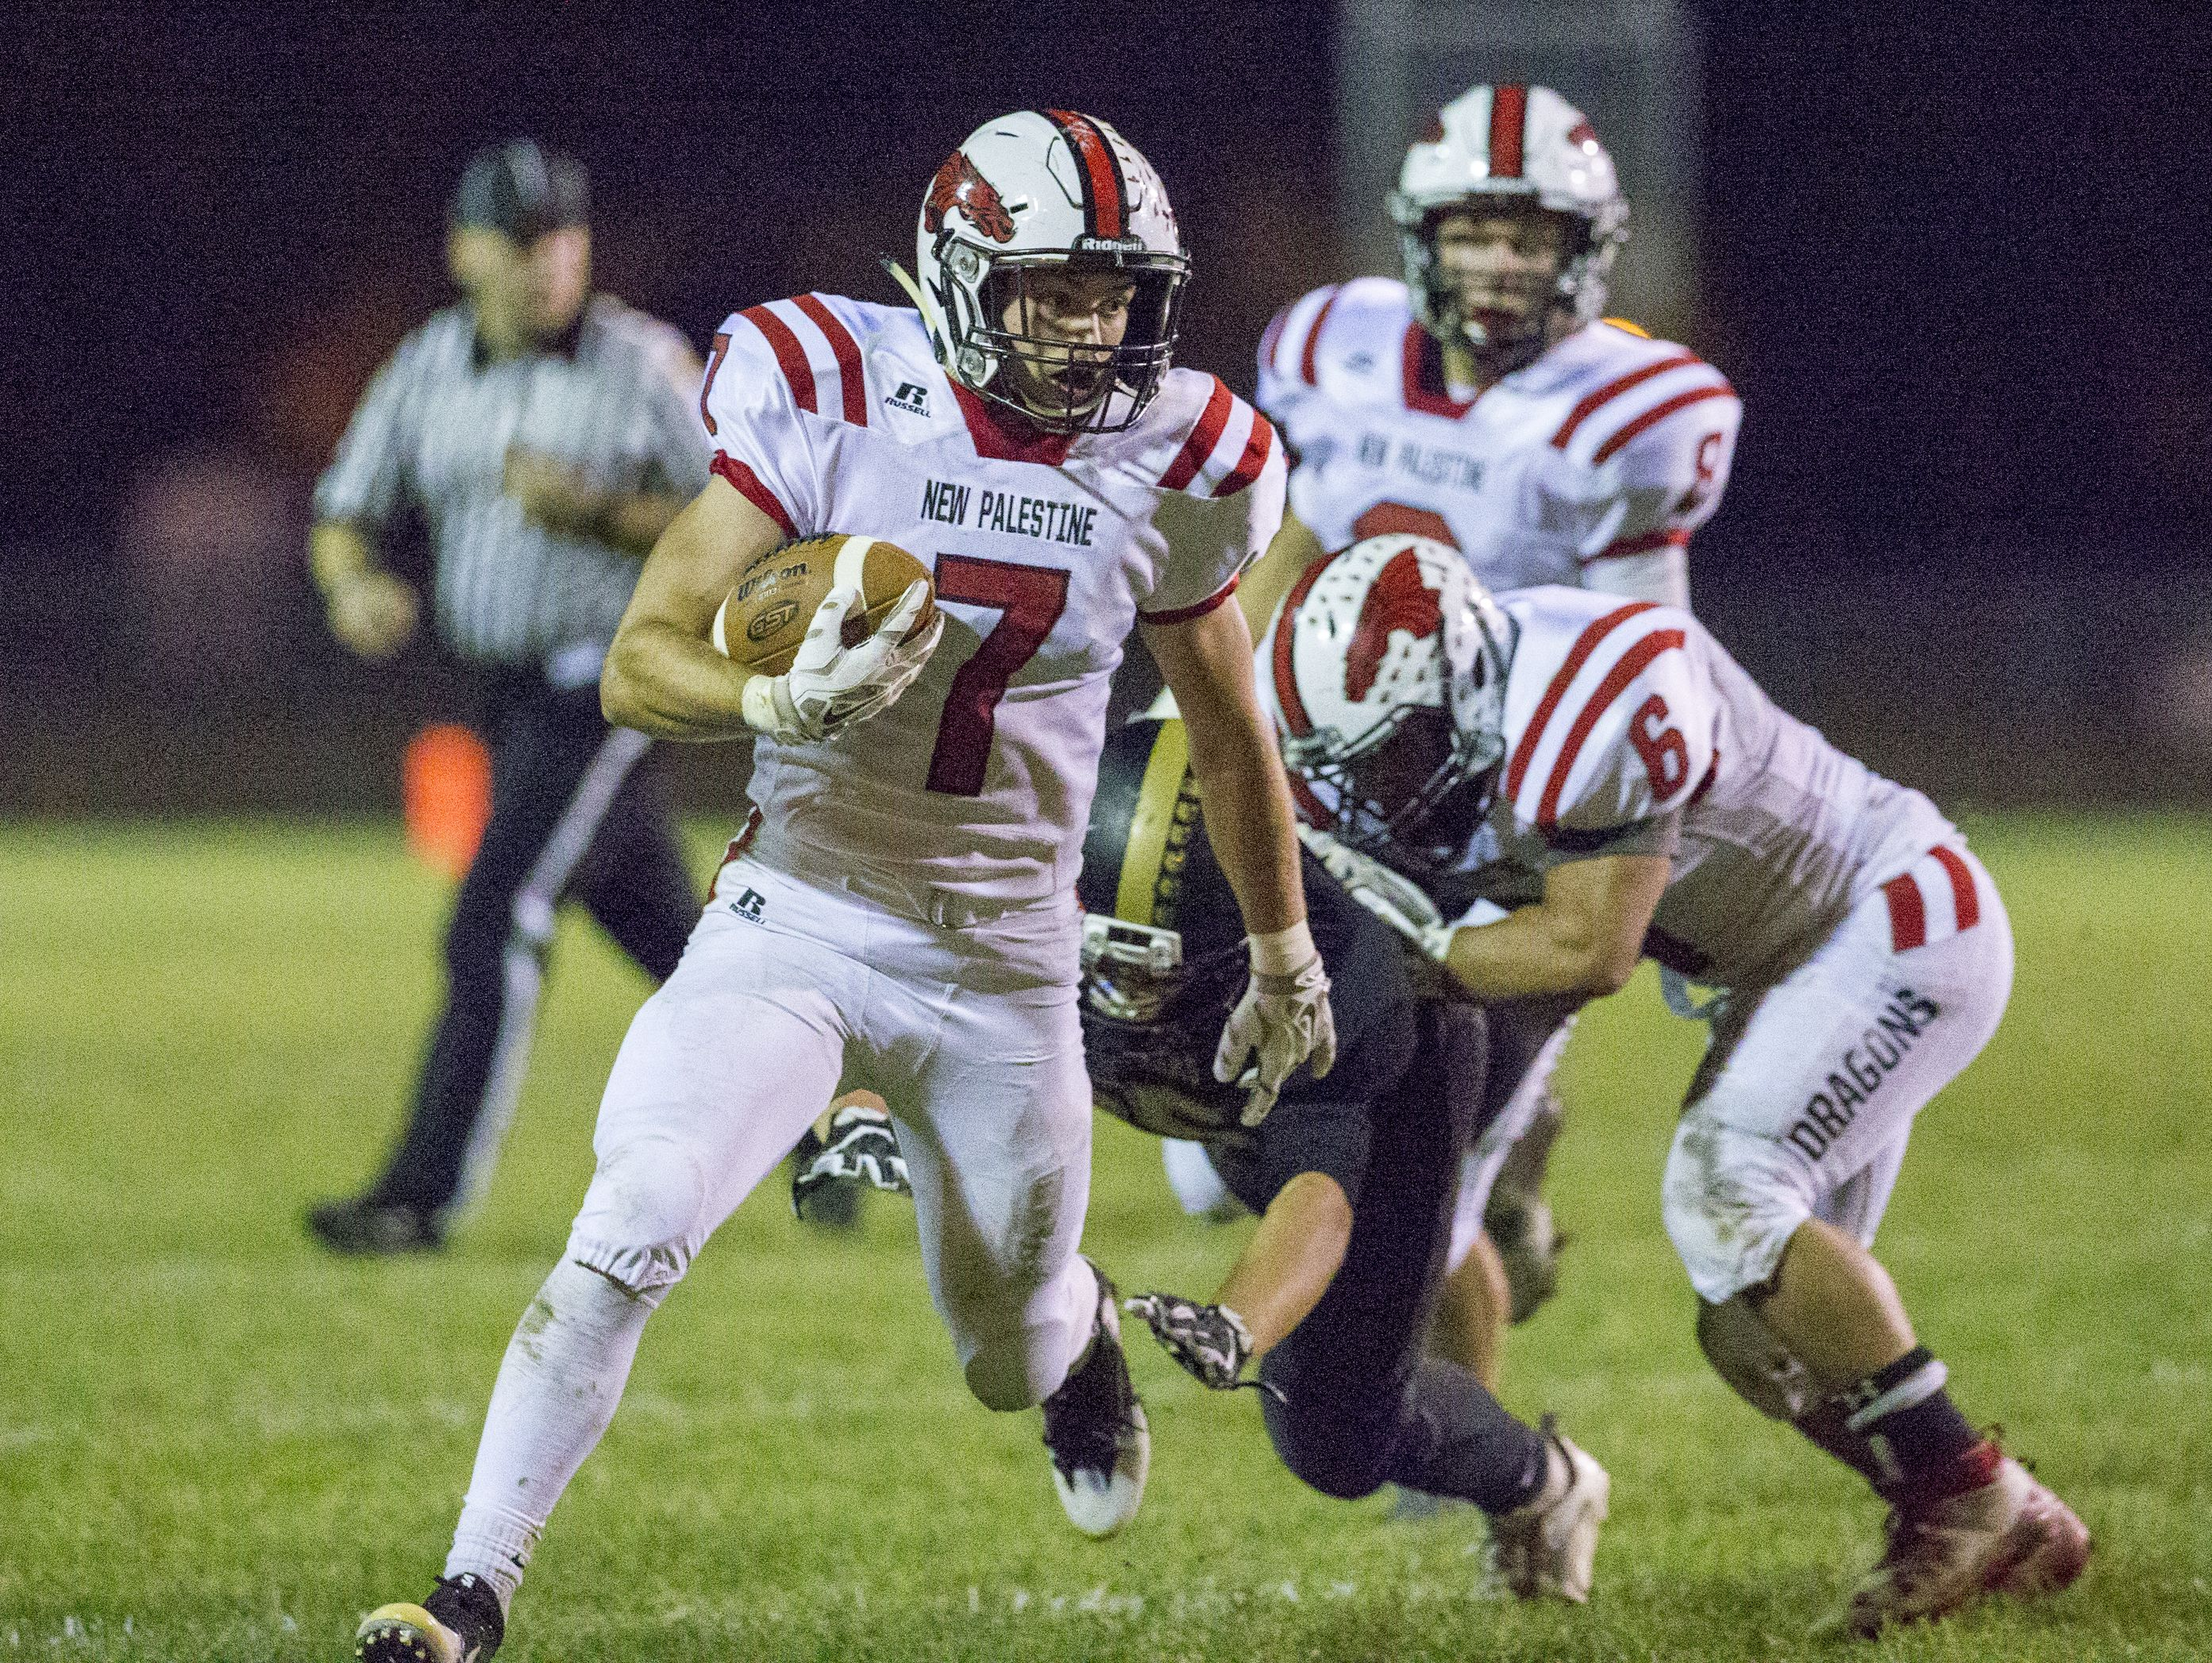 Adam Kincaid (7) and New Palestine face a familiar foe in Friday's sectional opener – Columbus East.